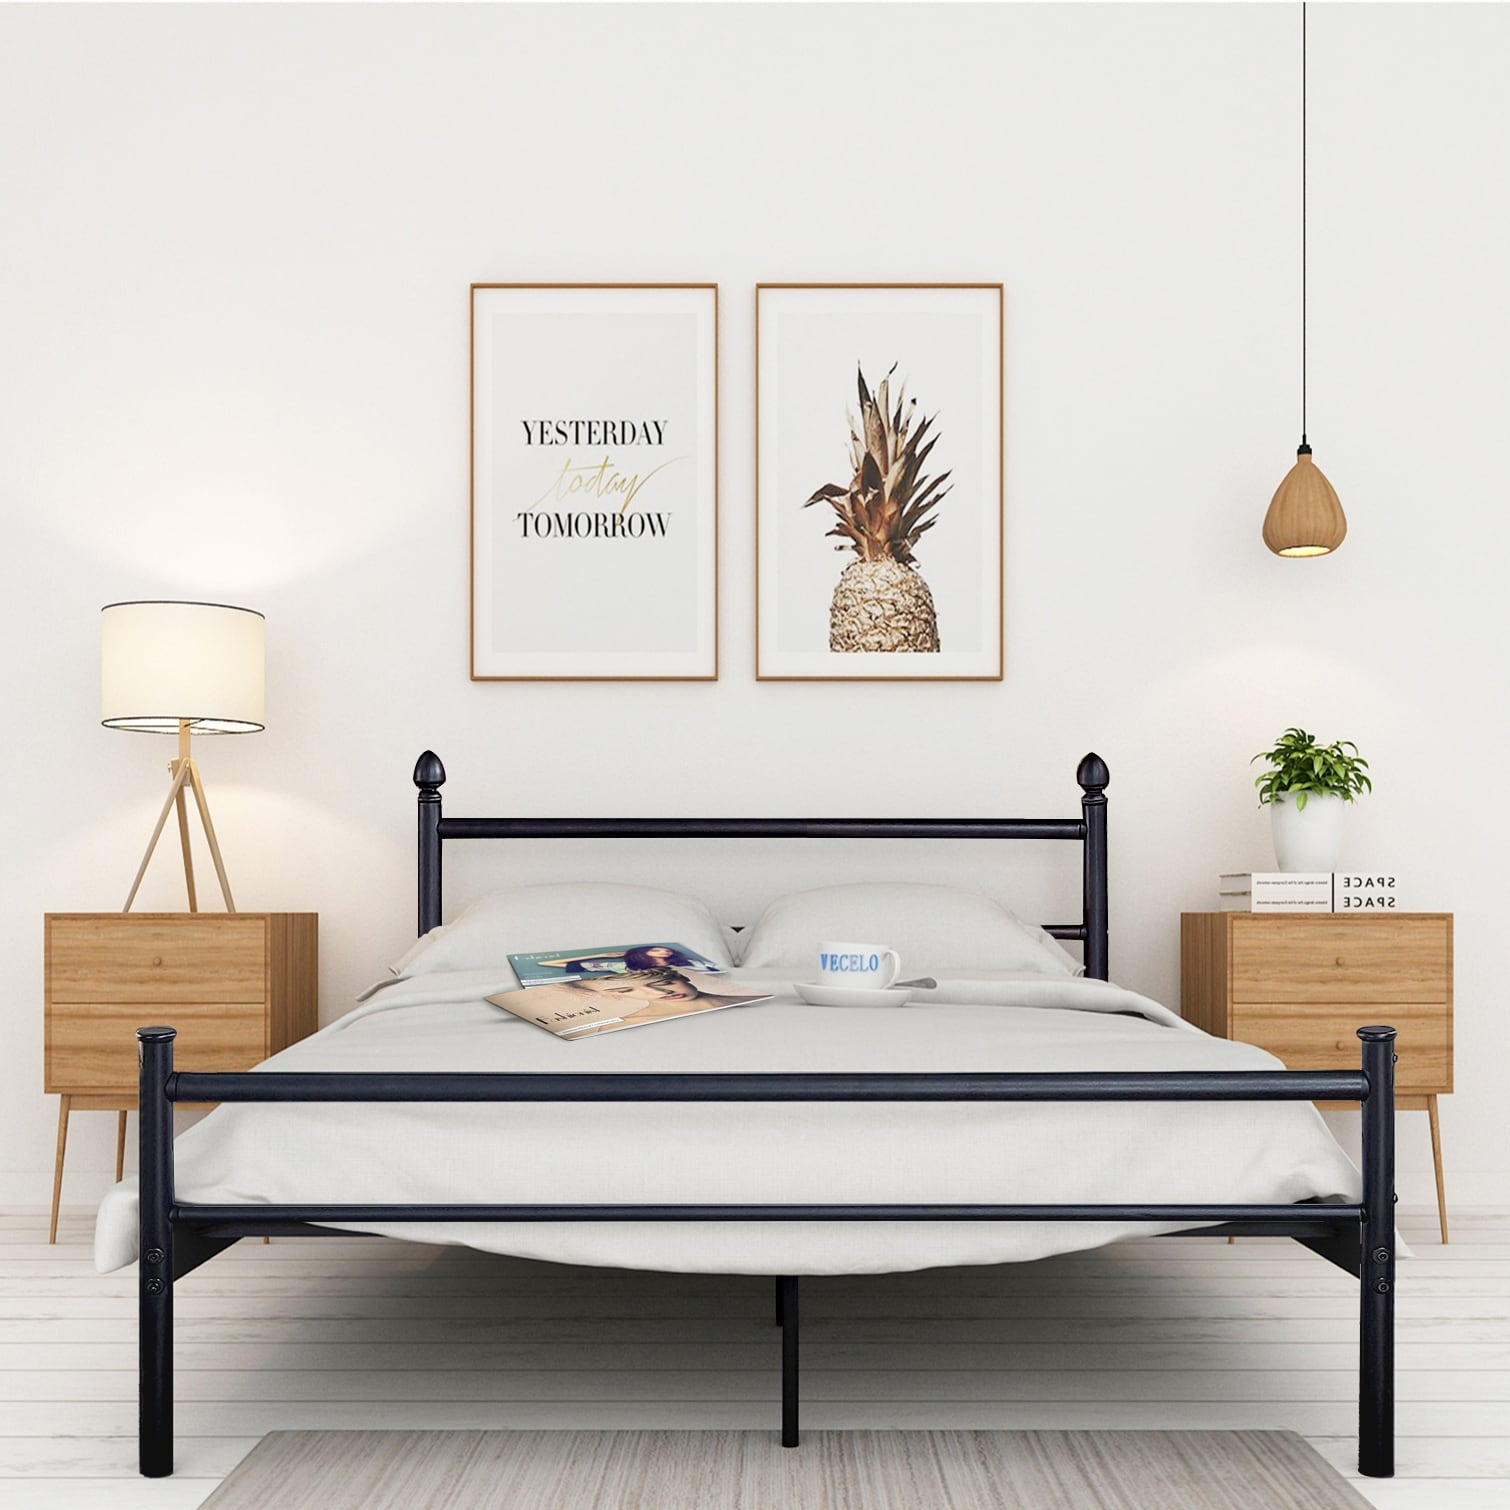 Bed Headboard Vecelo Platform Bed Frame Queen Full Twin Size Metal Beds Mattress Foundation With Headboard And Footboard